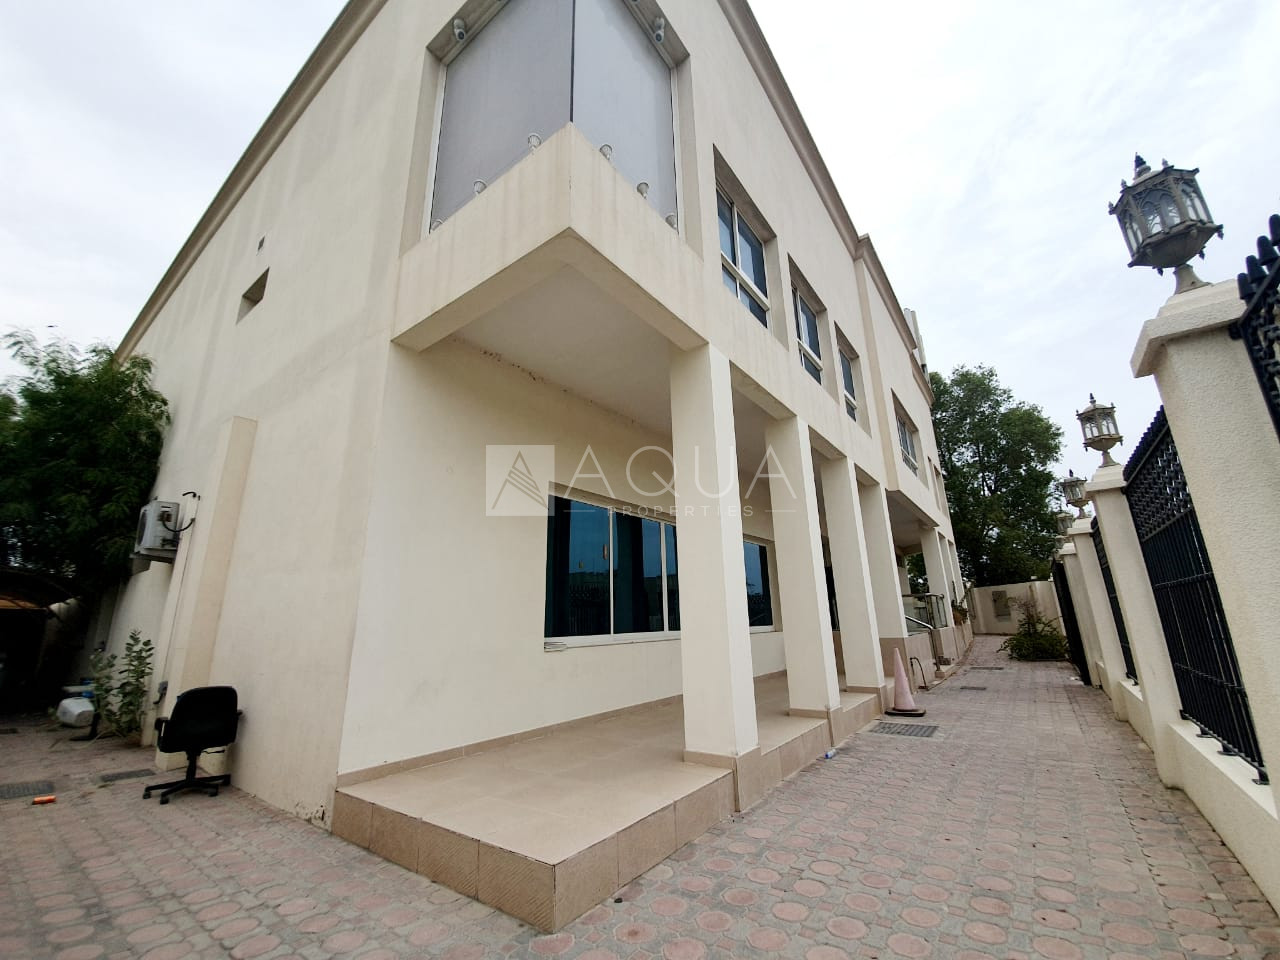 Commercial Building | Ideal for Hospital